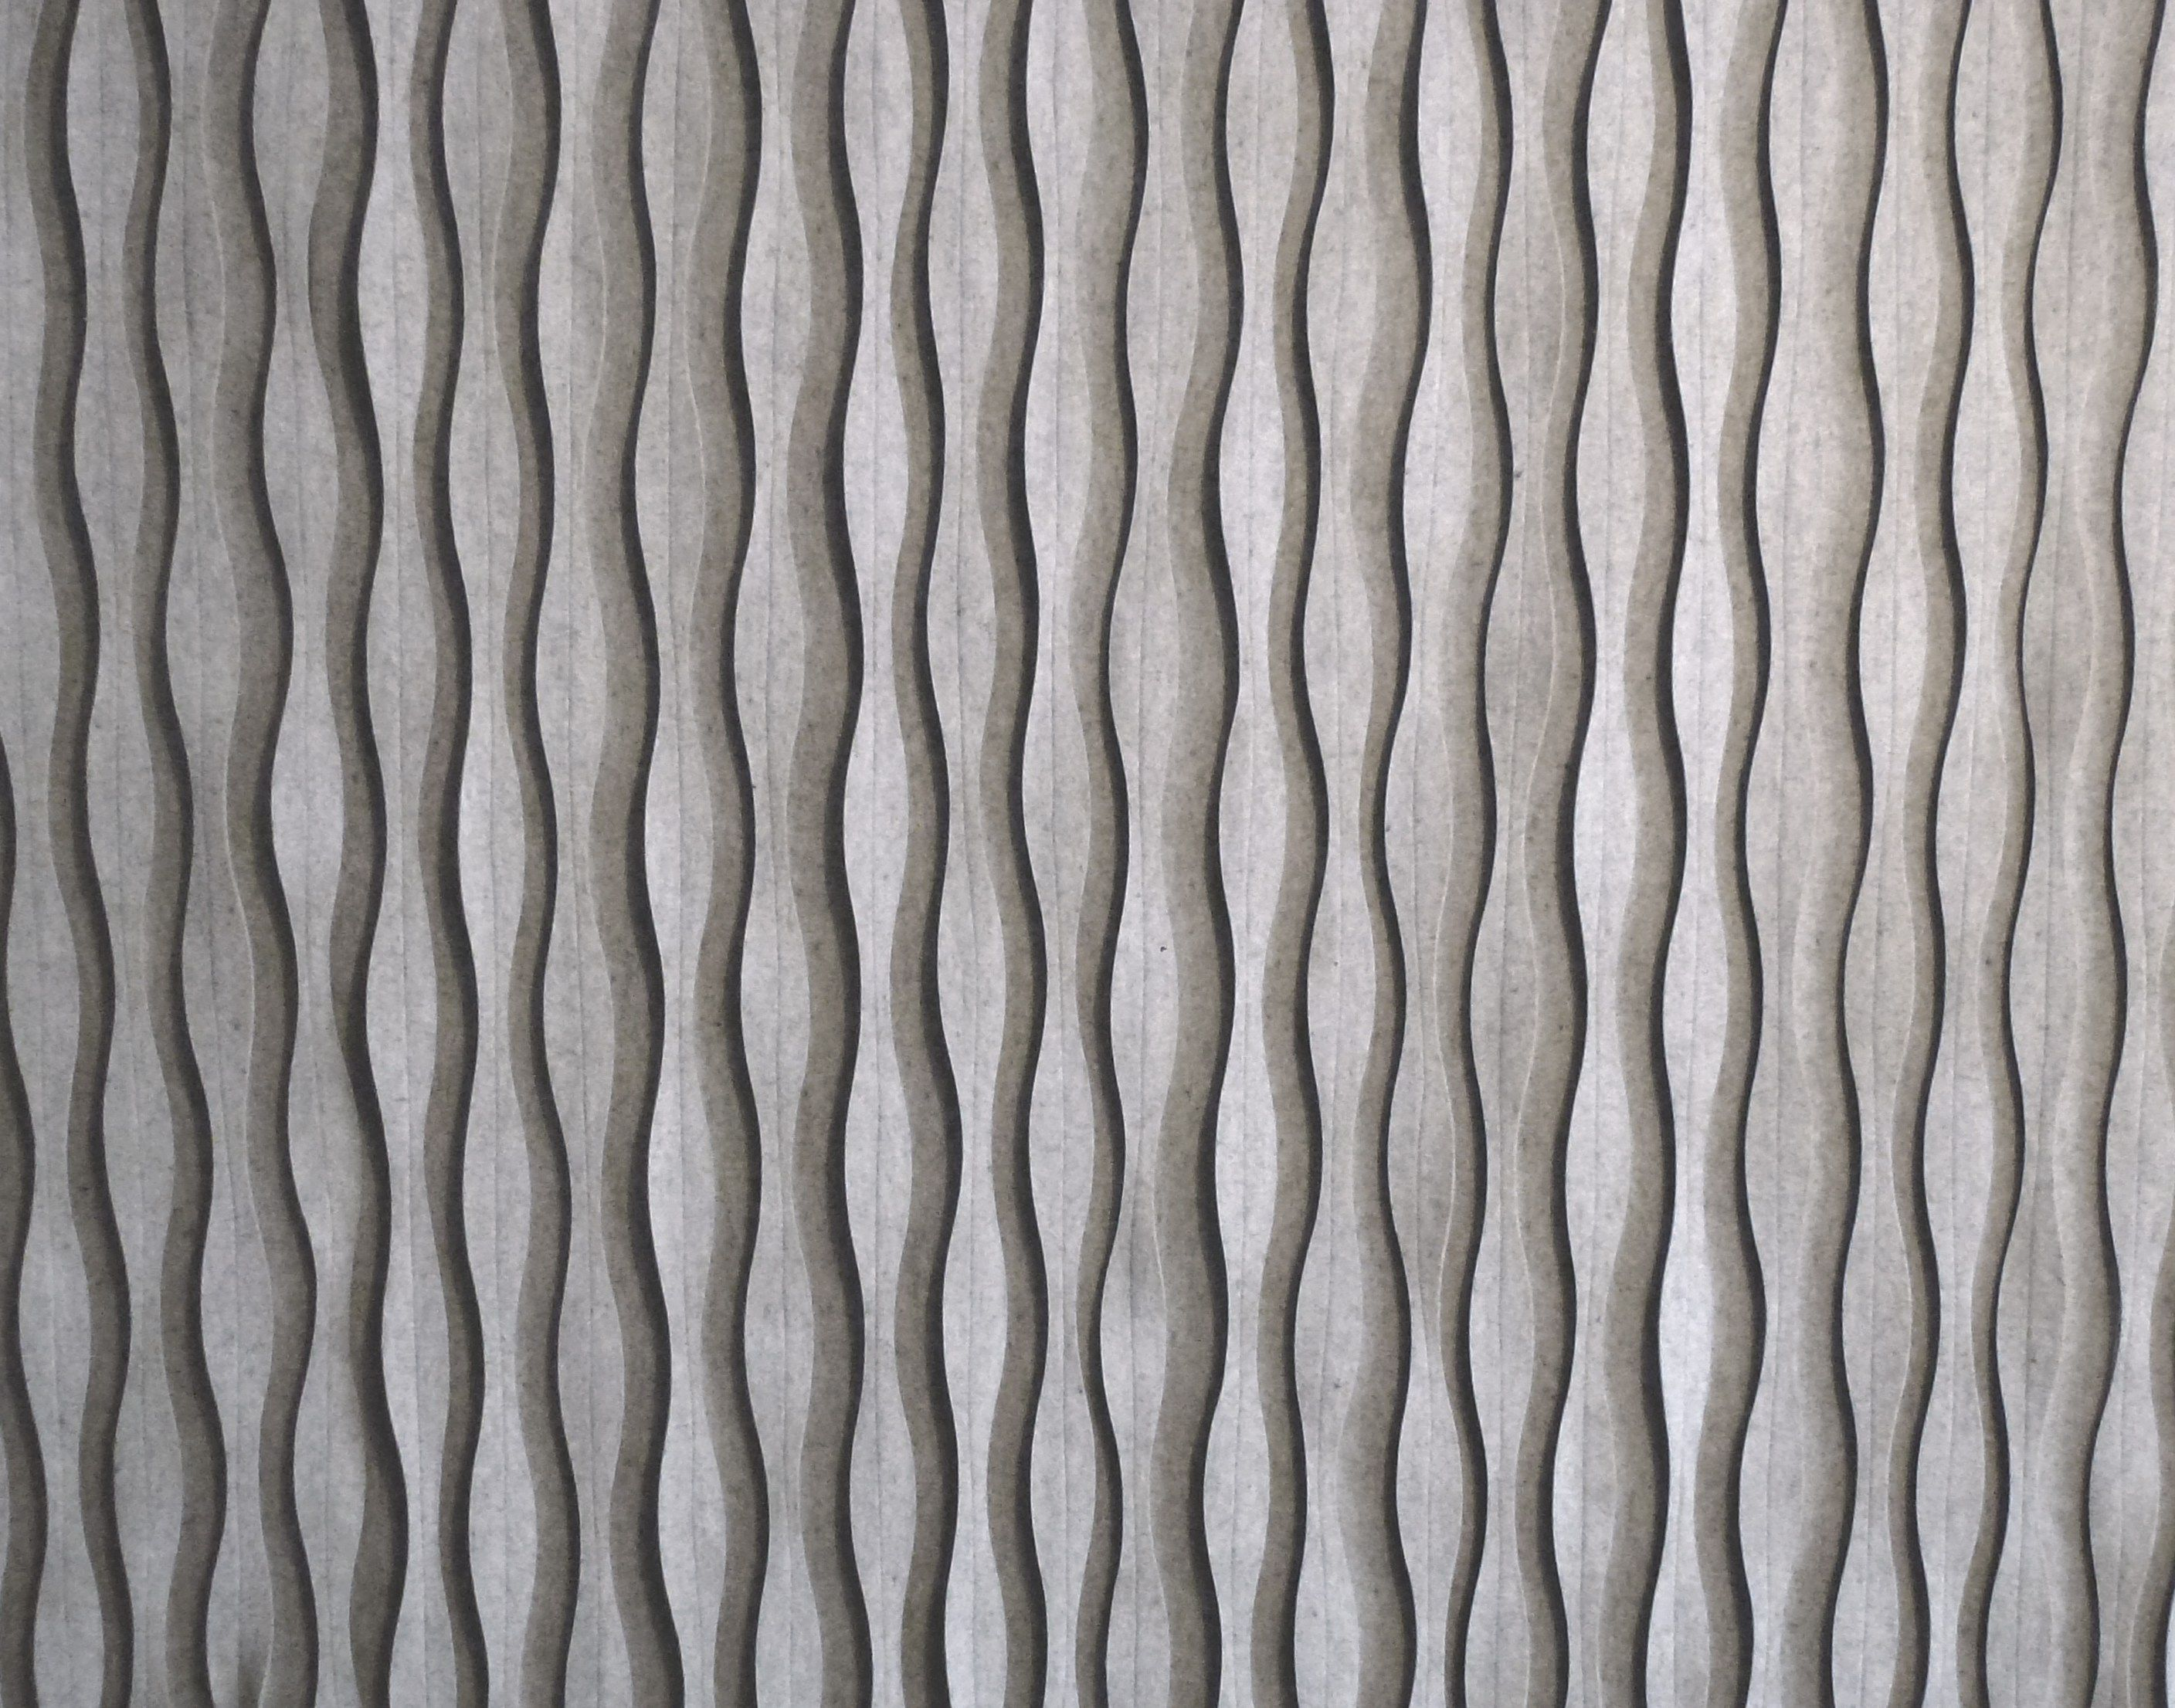 Decorative Acoustic Wall Panels wool felt decorative acoustical panels pleatanne kyyrö quinn